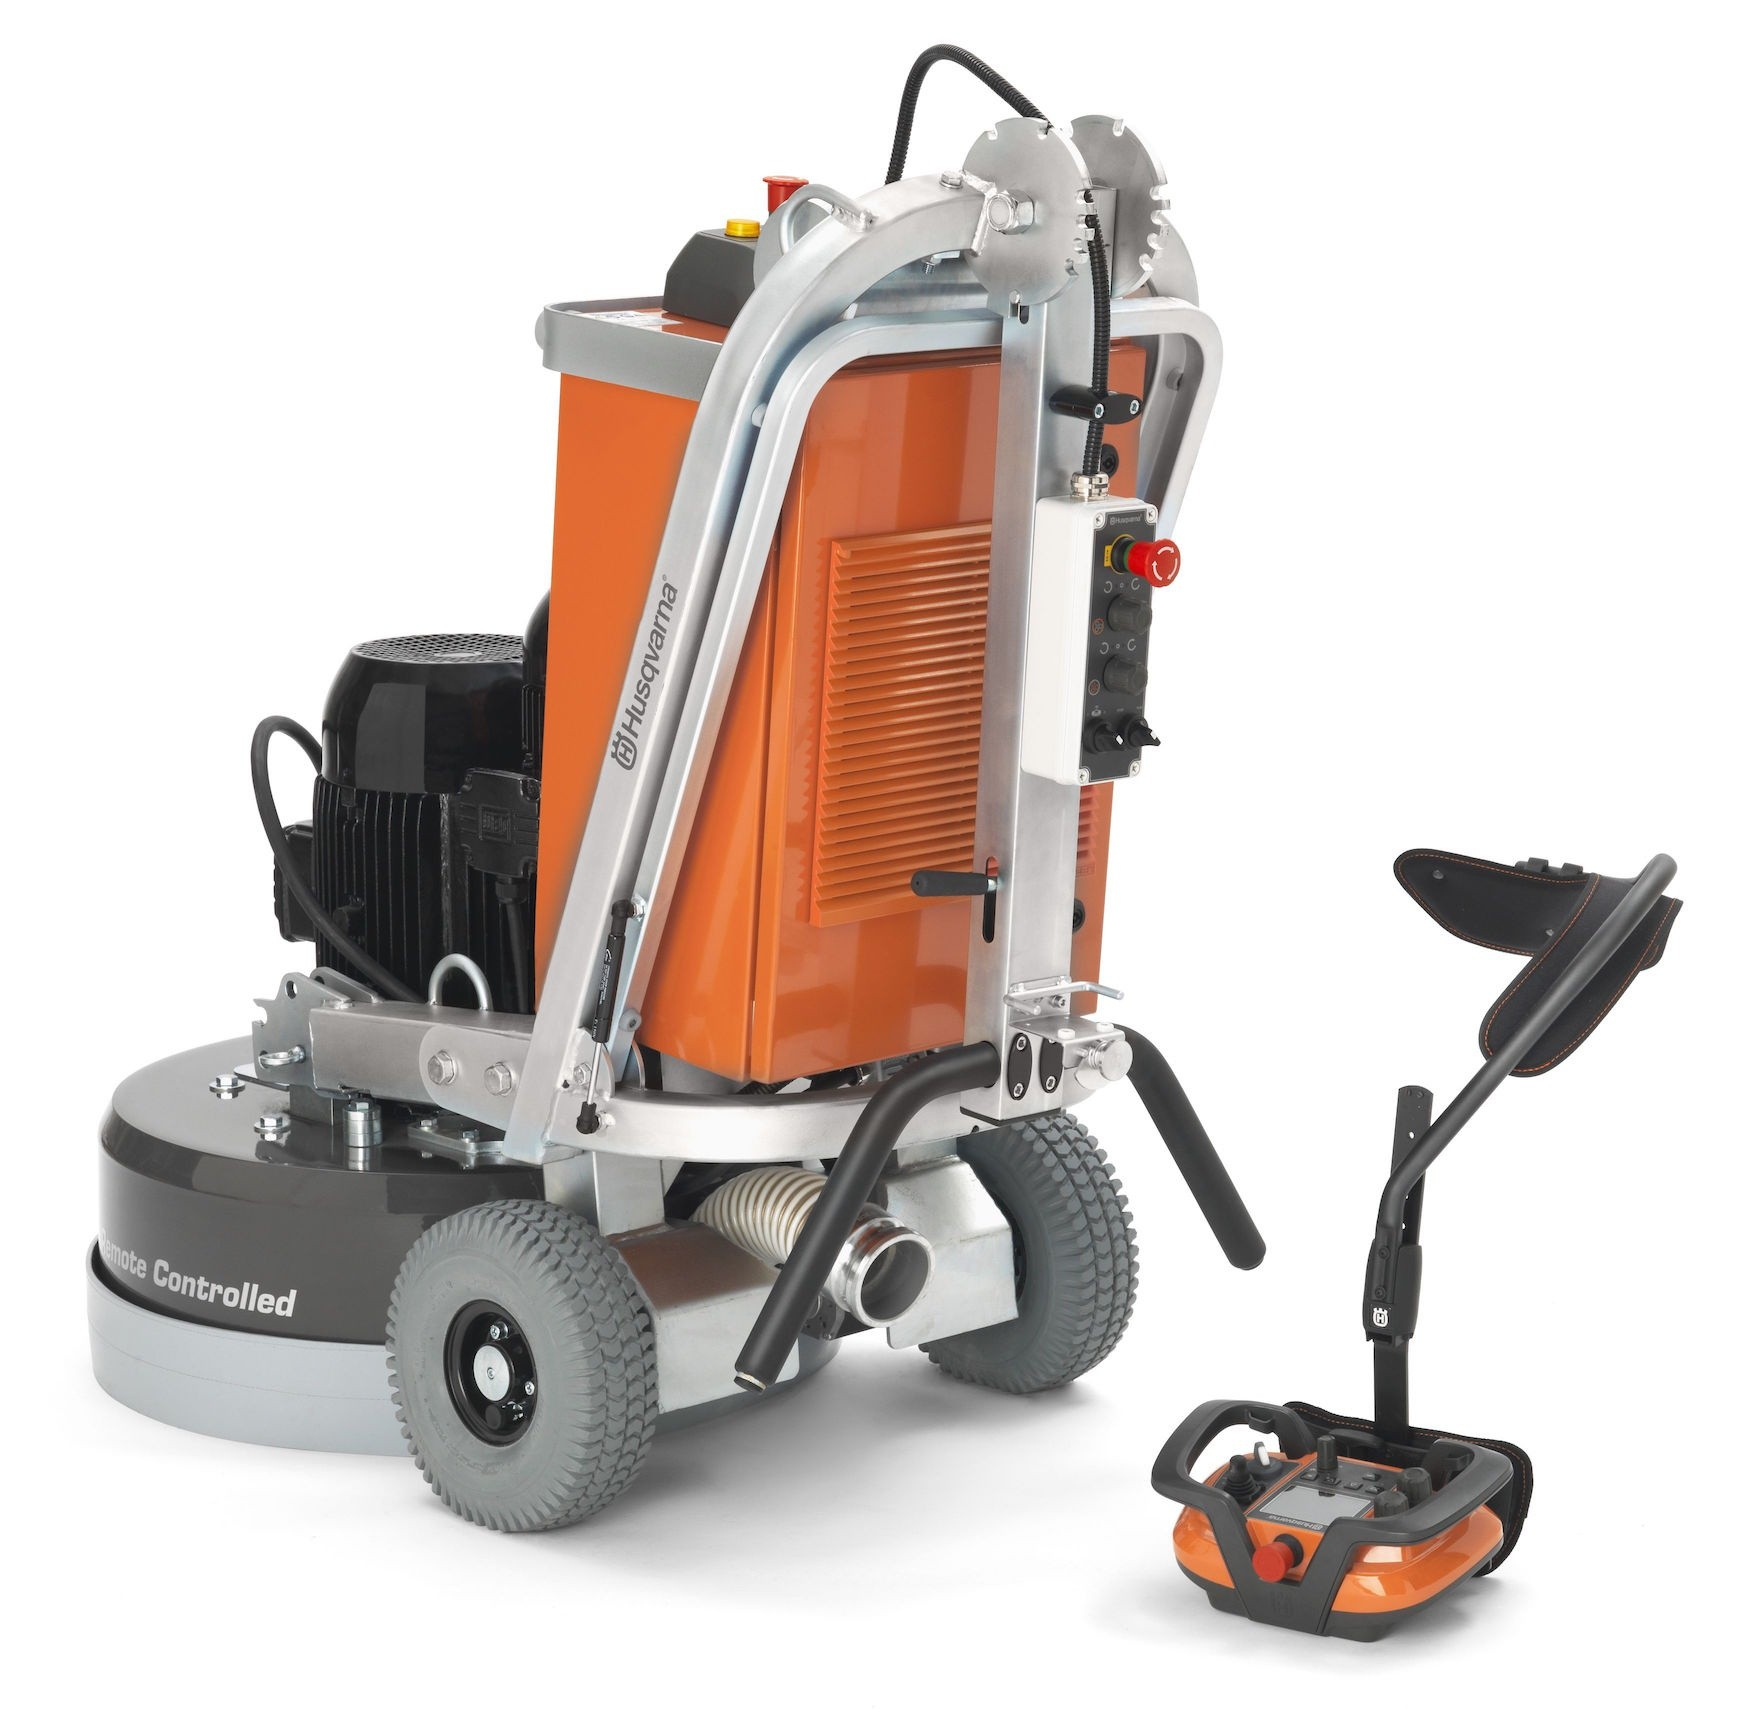 New Husqvarna PG 680 RC floor grinder